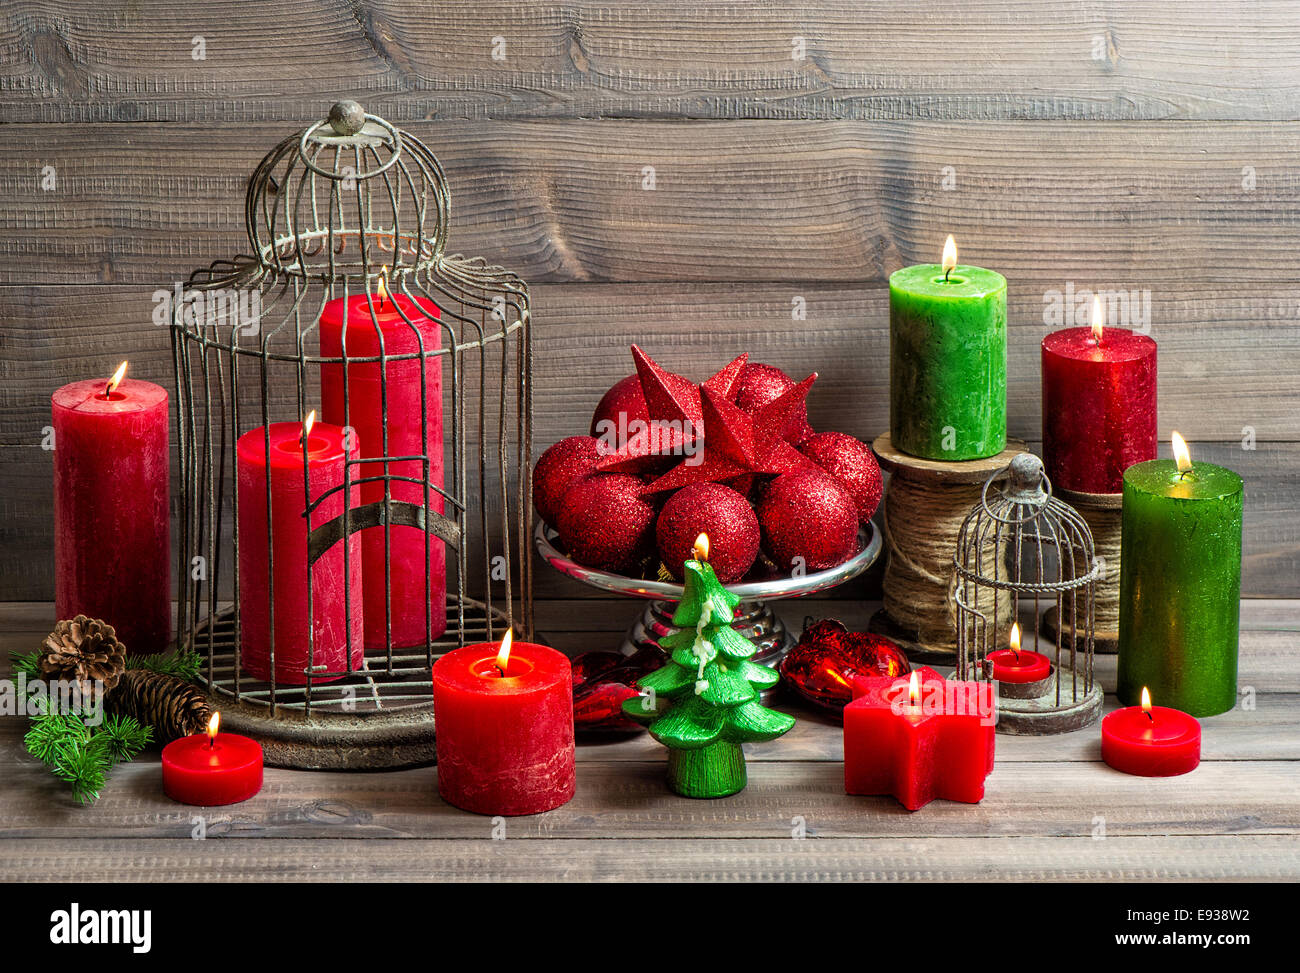 Stock Photo   Vintage Christmas Background With Birdcage, Burning Candles  And Baubles. Nostalgic Home Interior Decoration